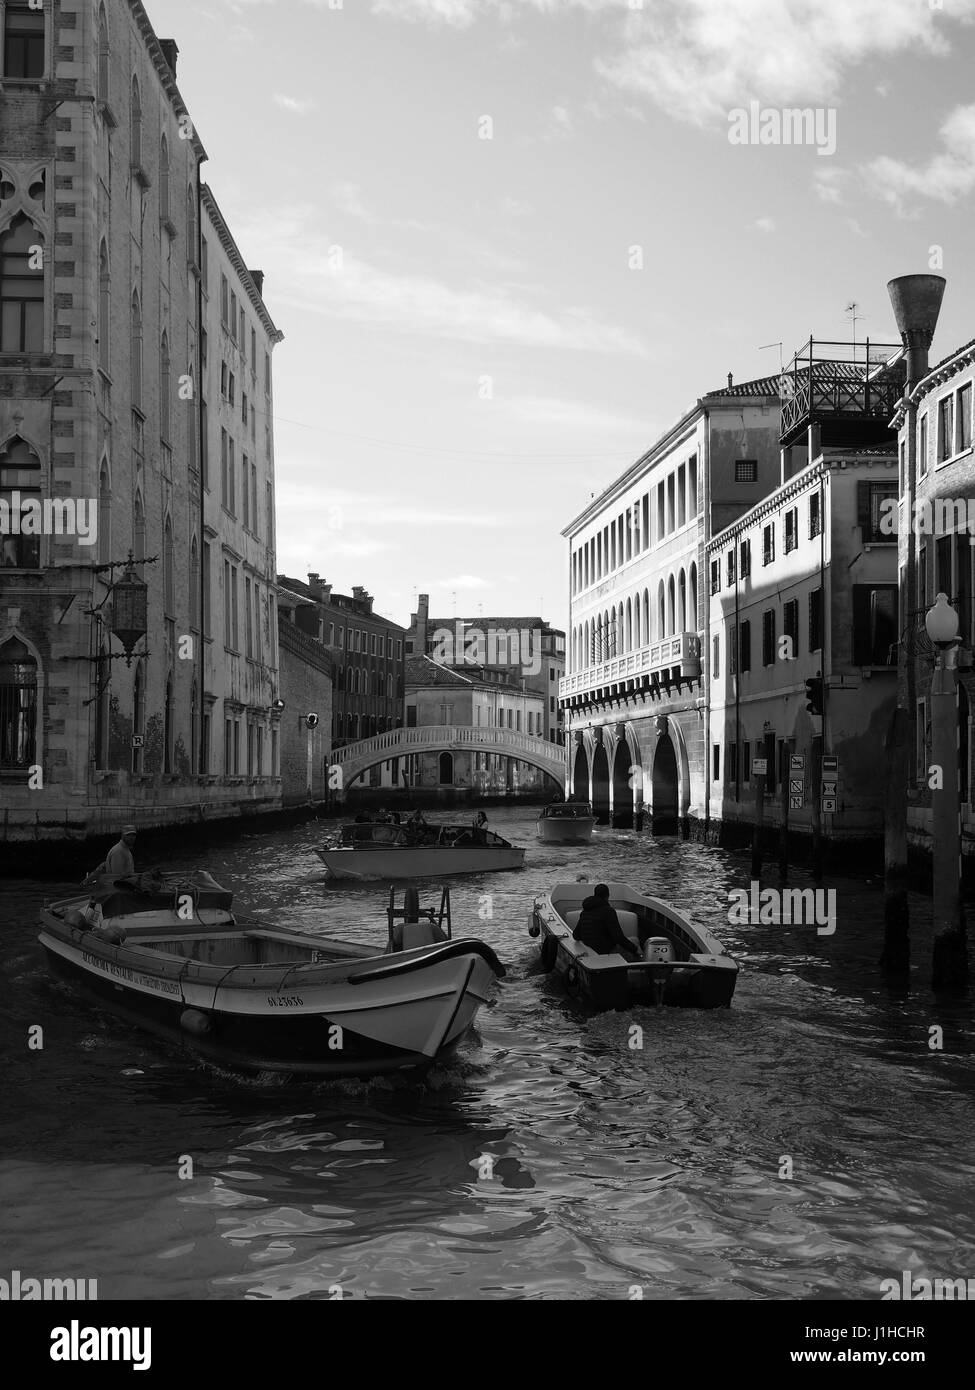 Canal in venice with bridge and two passing boats - Stock Image